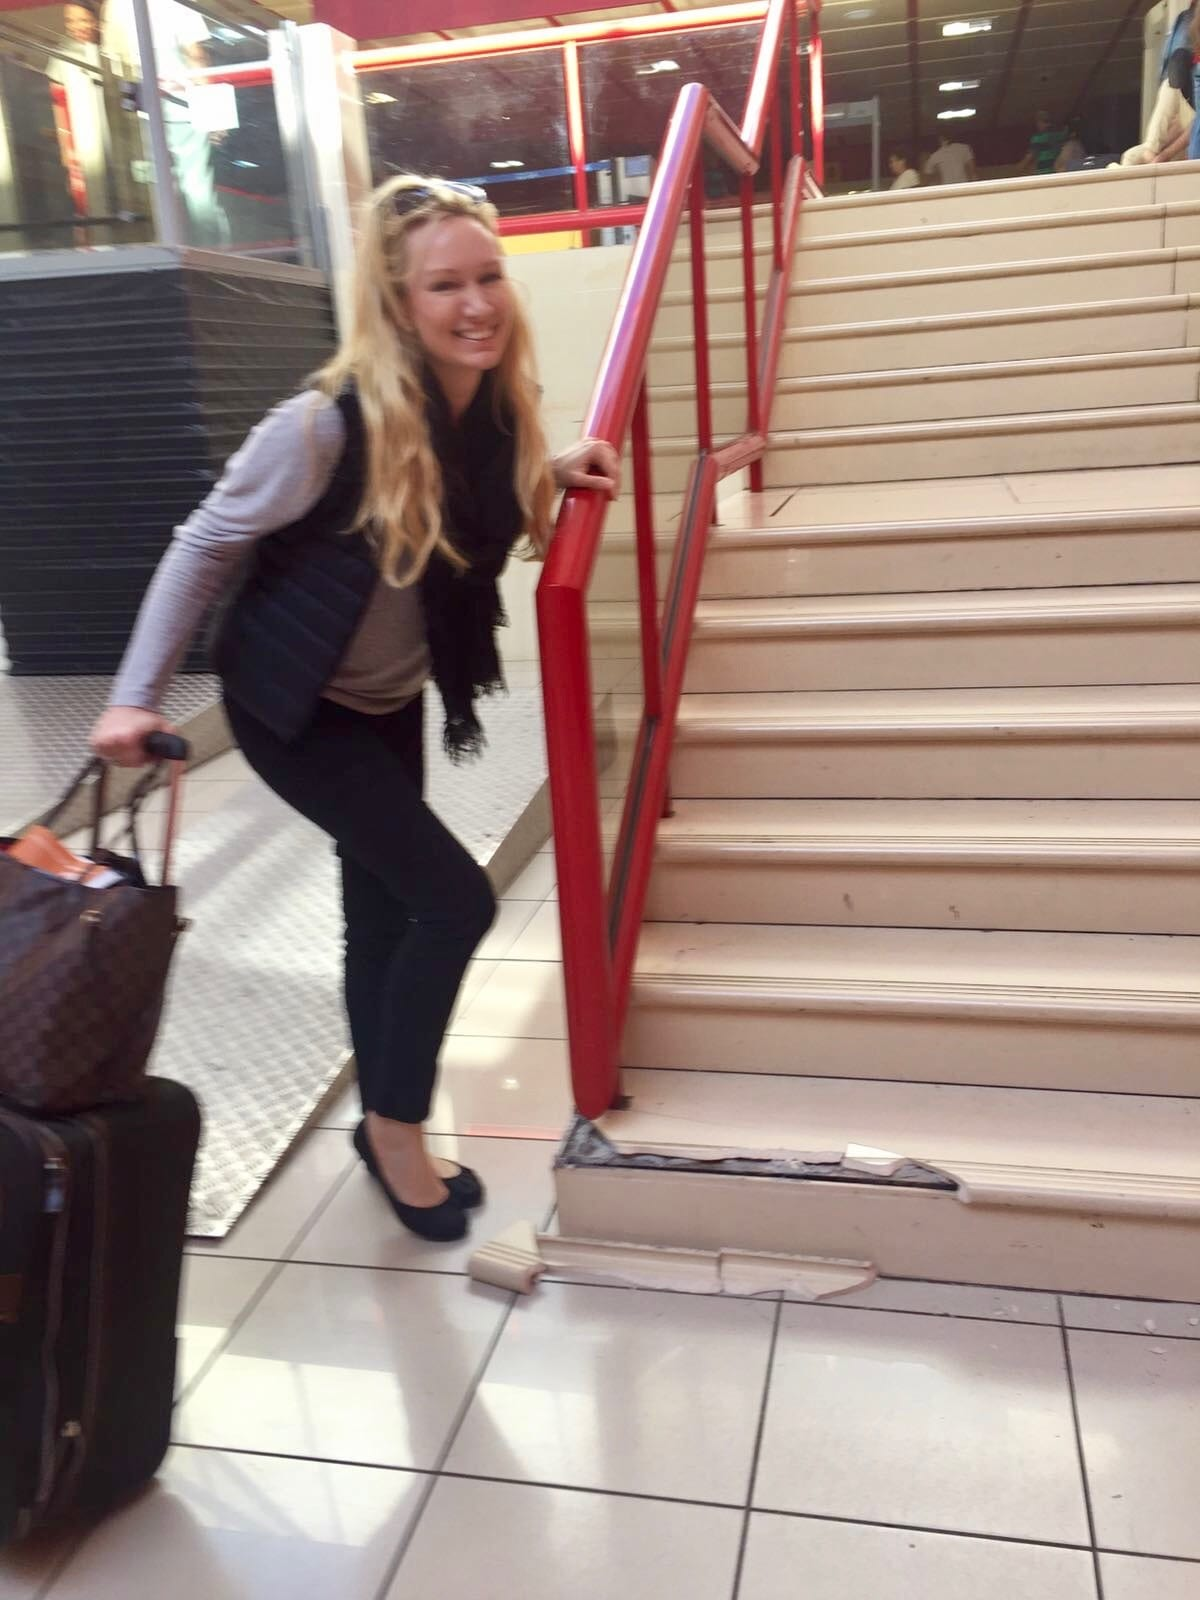 Kamelia stairs and luggage